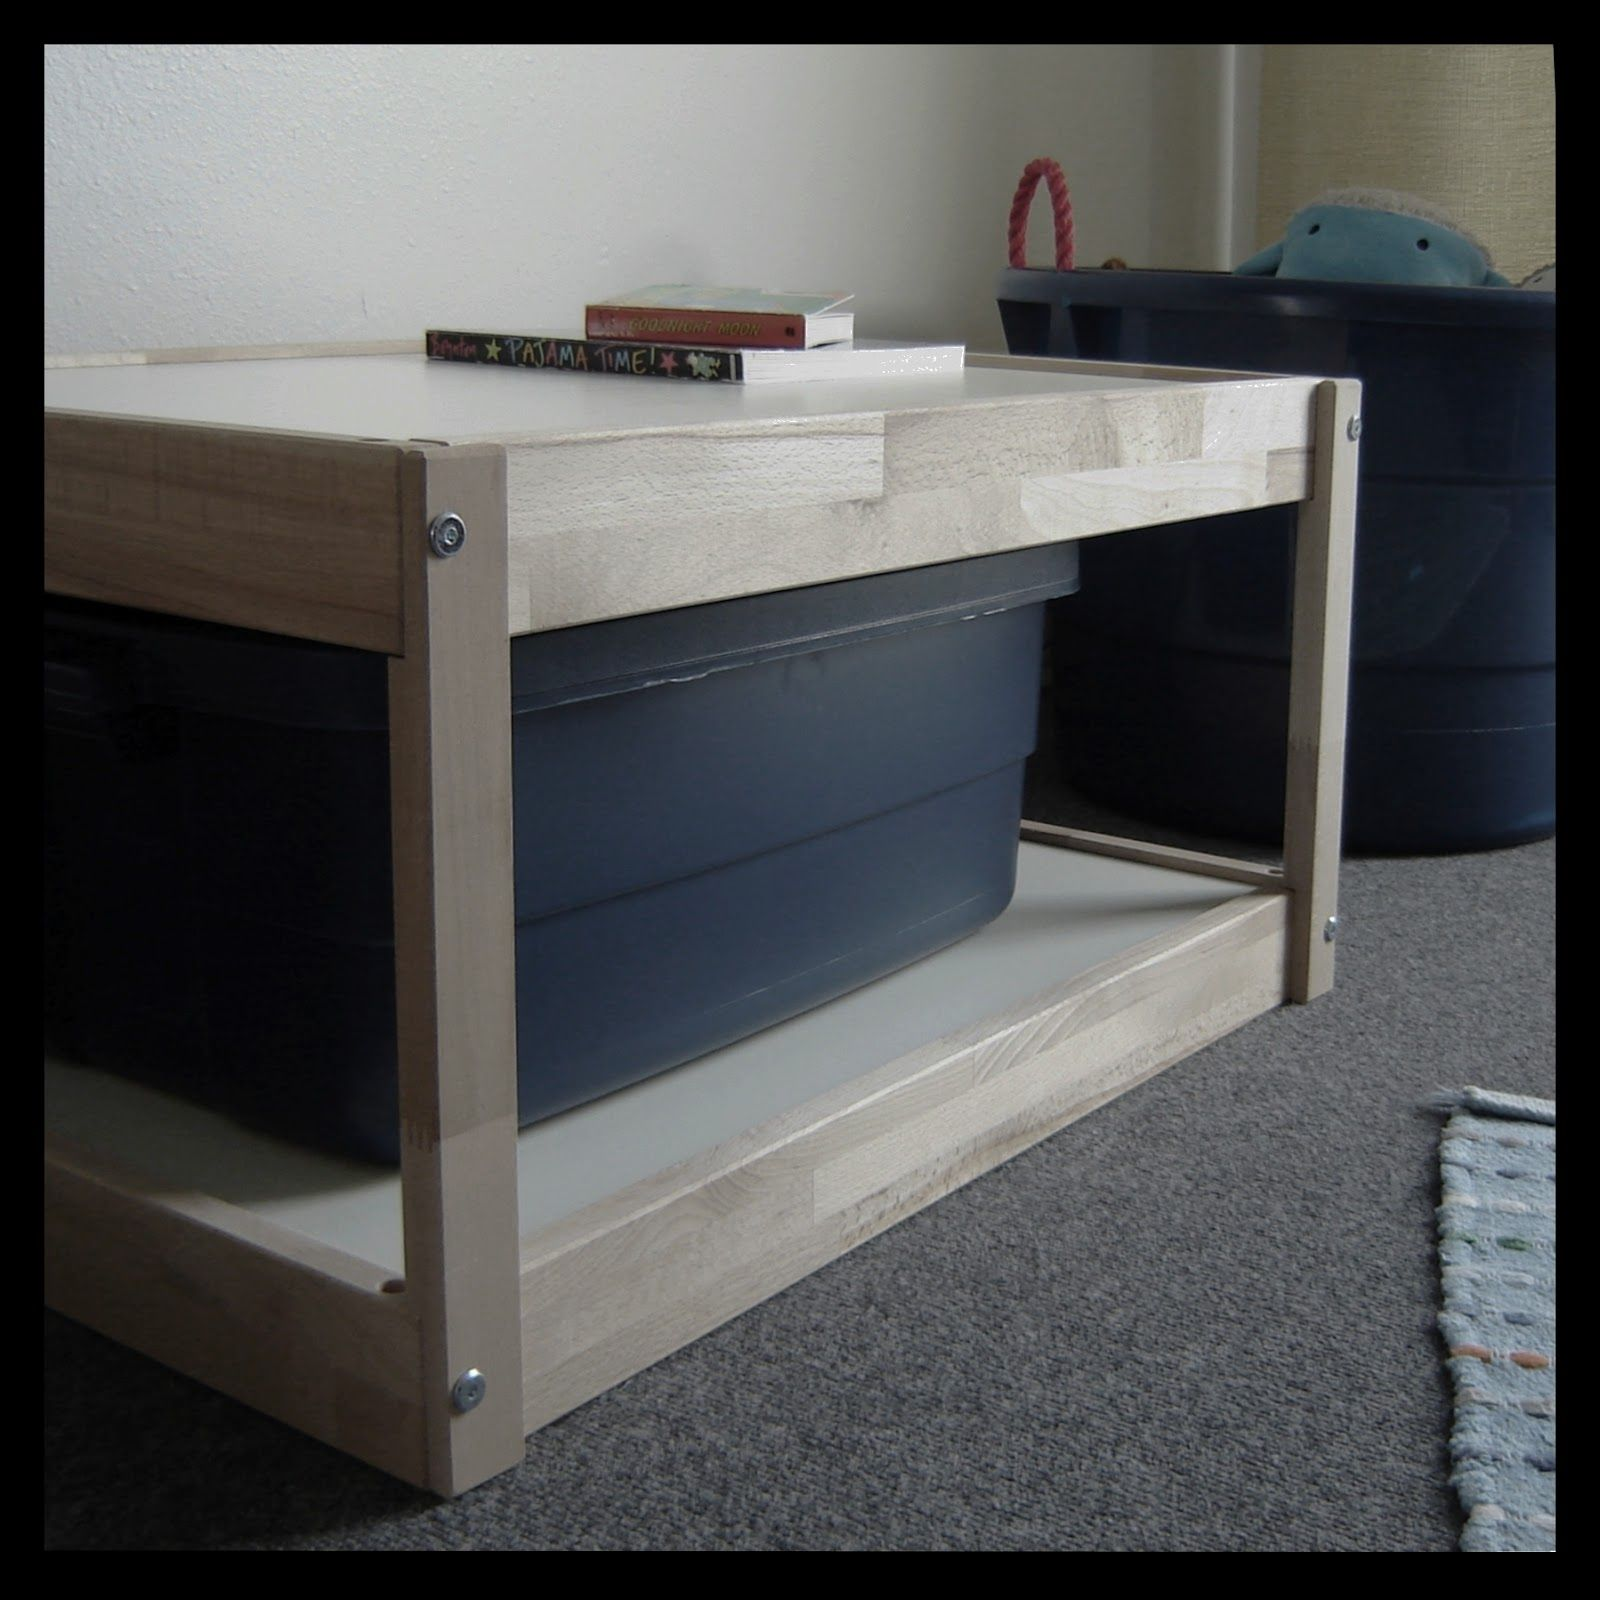 2013 Zoll IKEA Sniglar Table Hack littles room